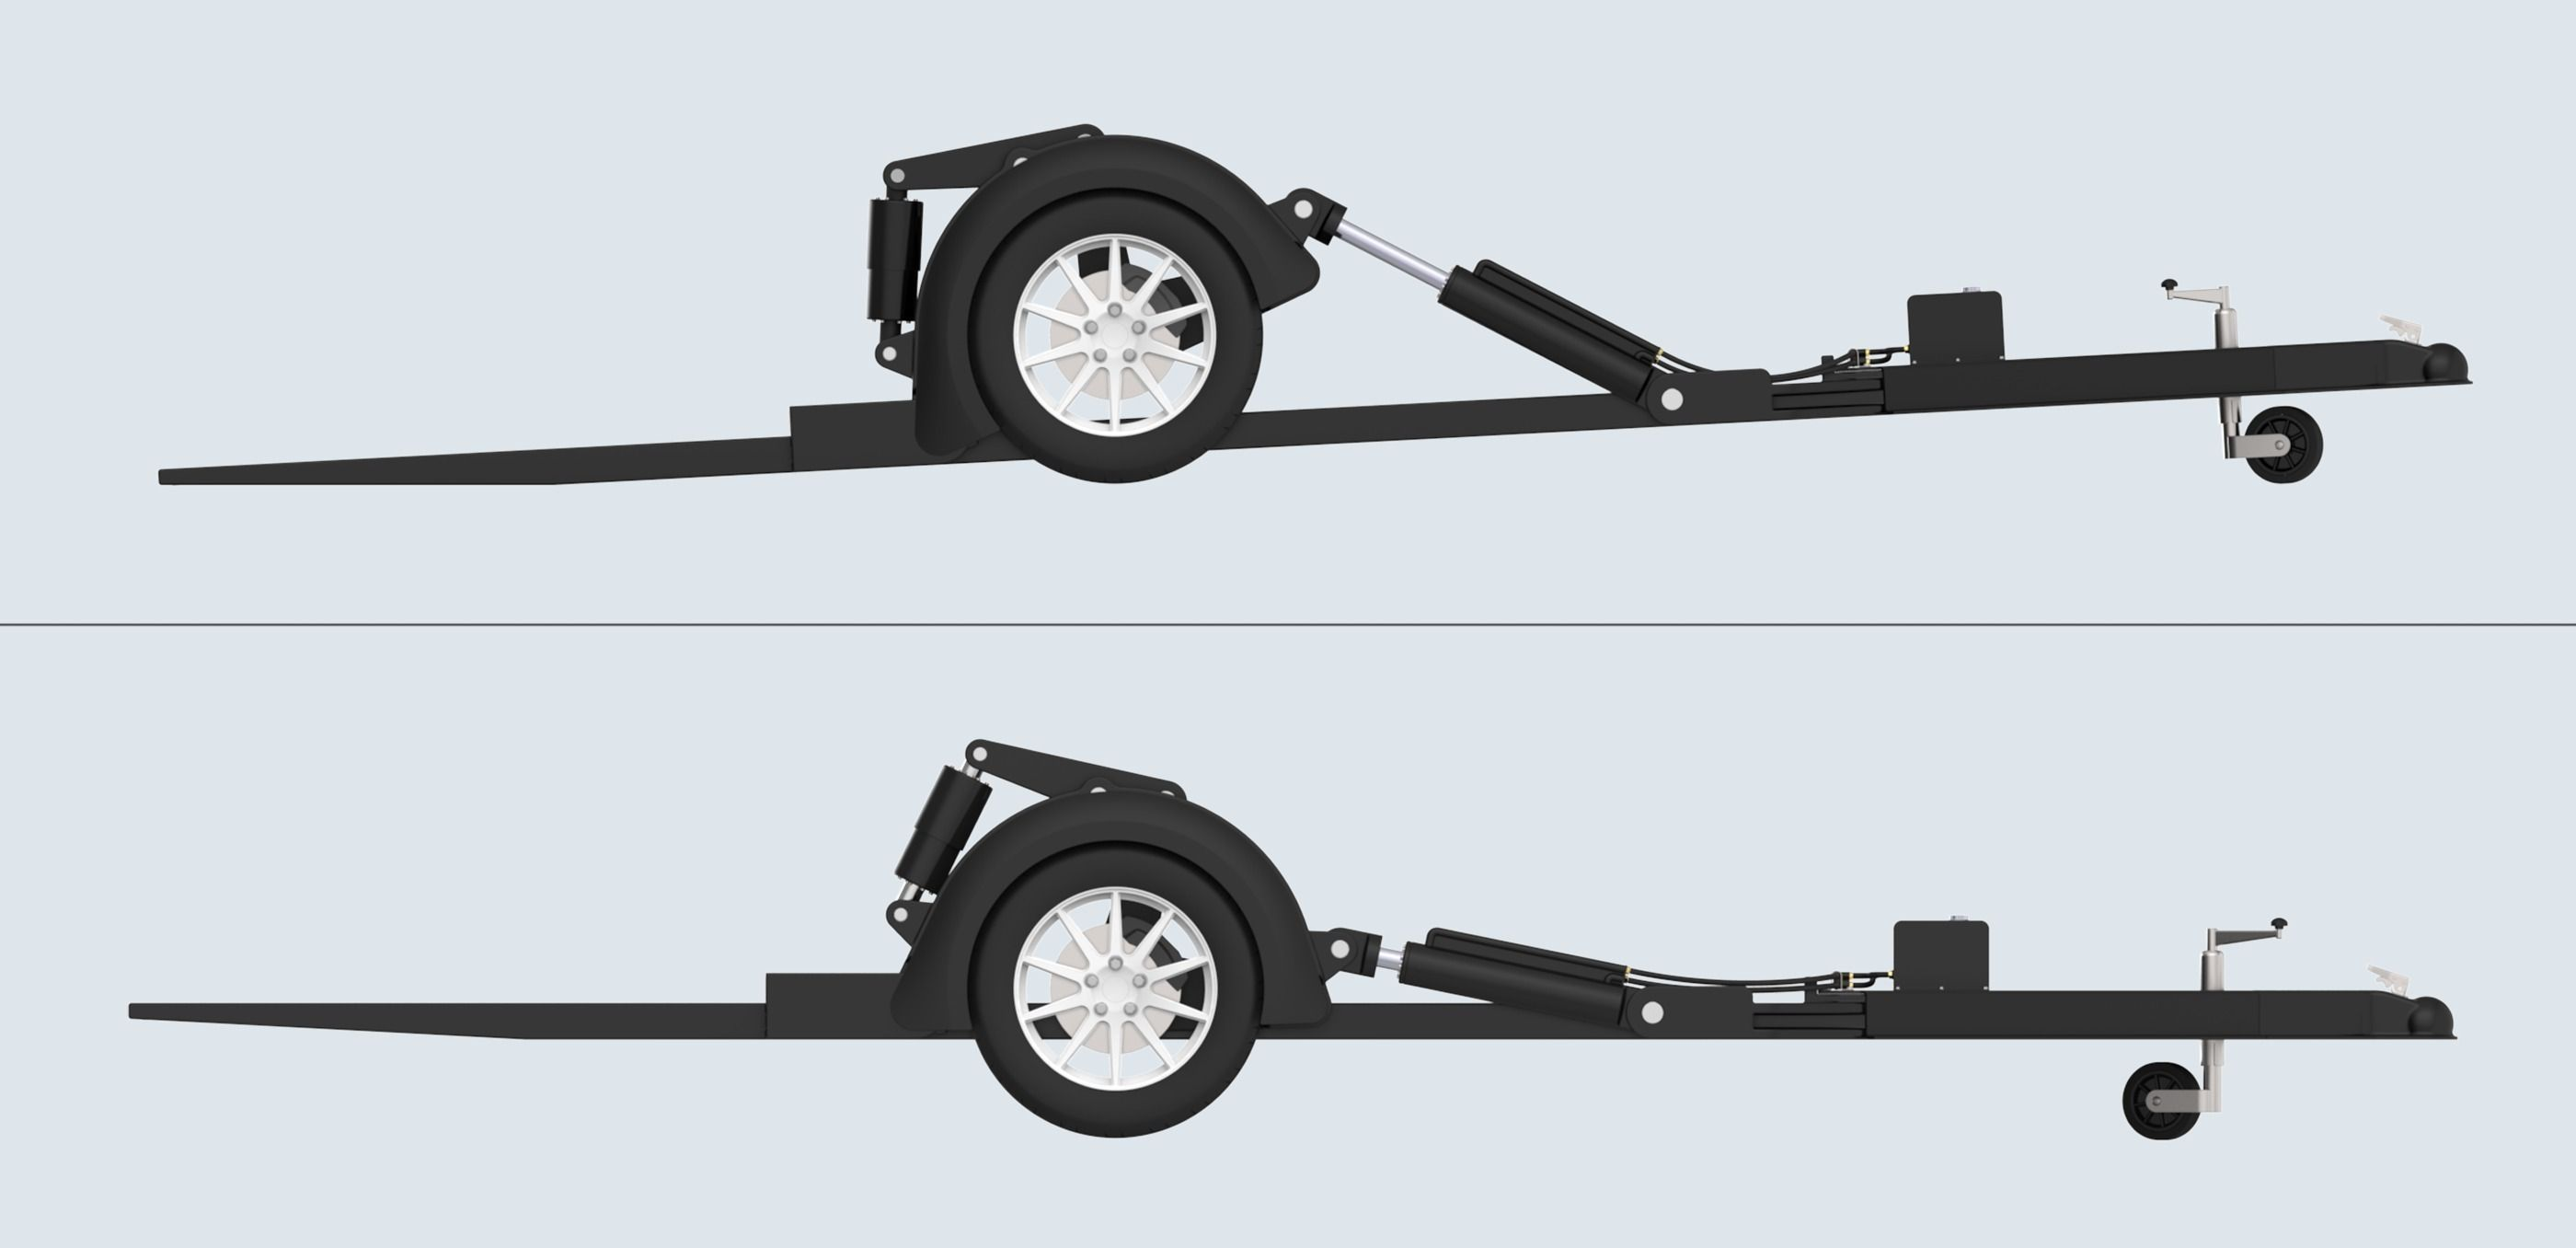 Bauer drop down trailer free 3d model sldprt sldasm slddrw for Crank down fish house axles